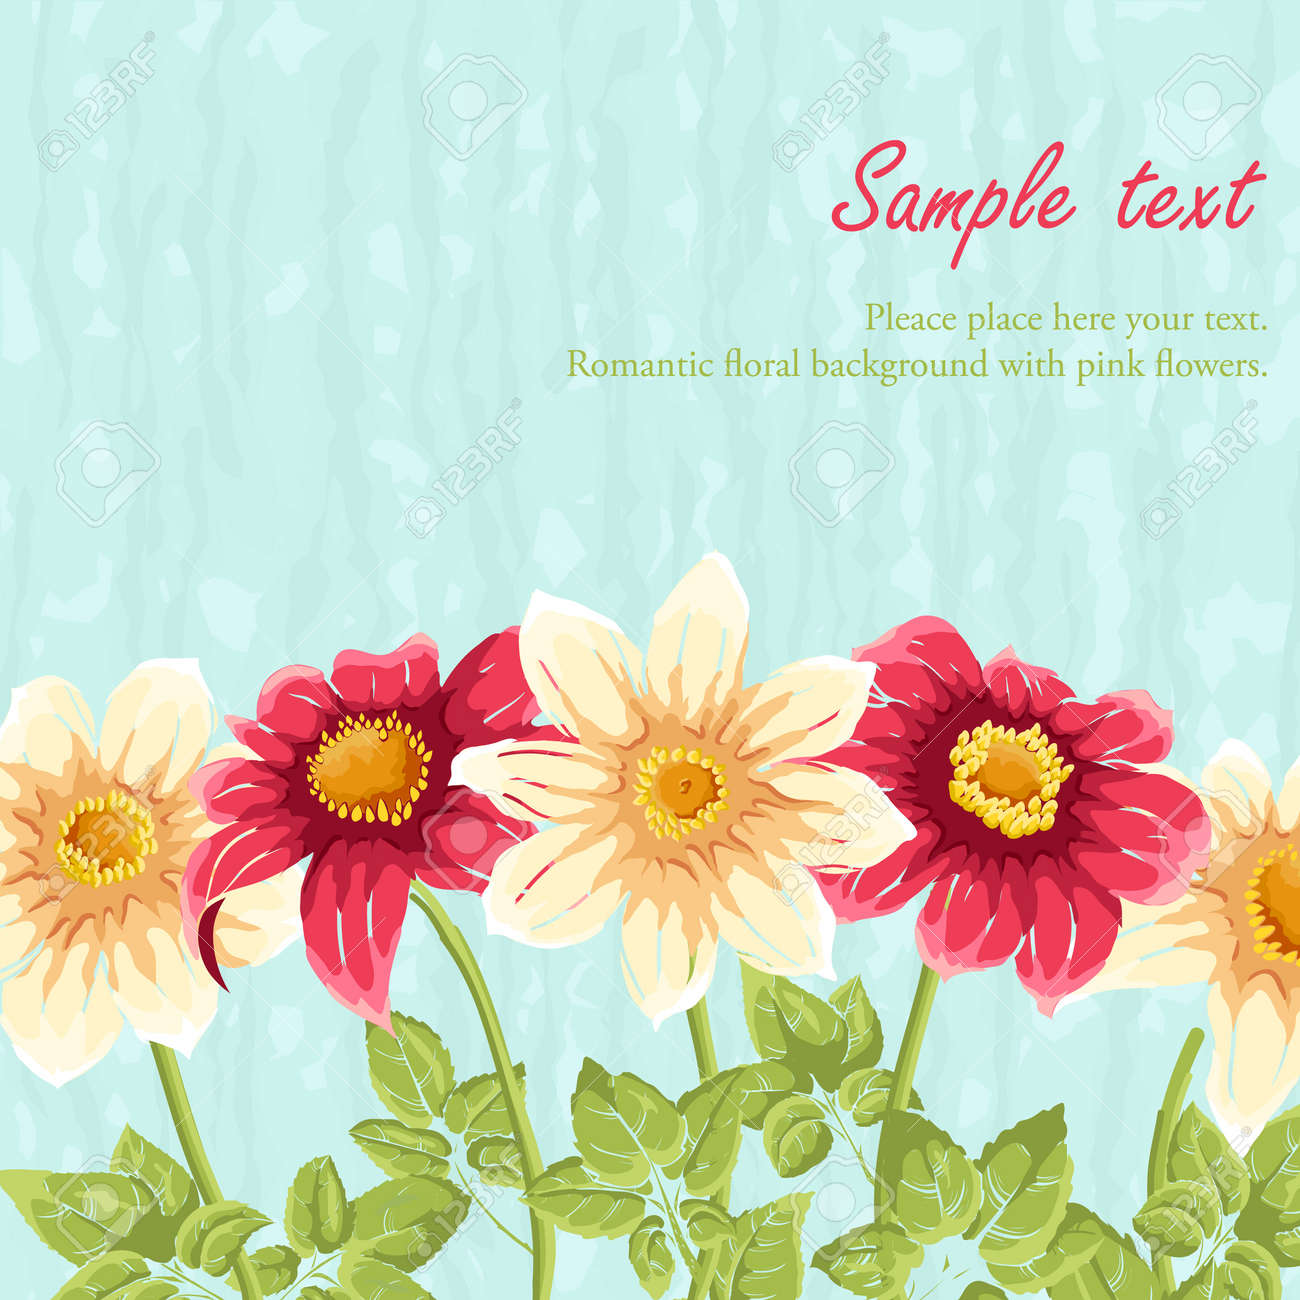 Cute Floral Backgrounds With Sky And Flowers Royalty Free Cliparts